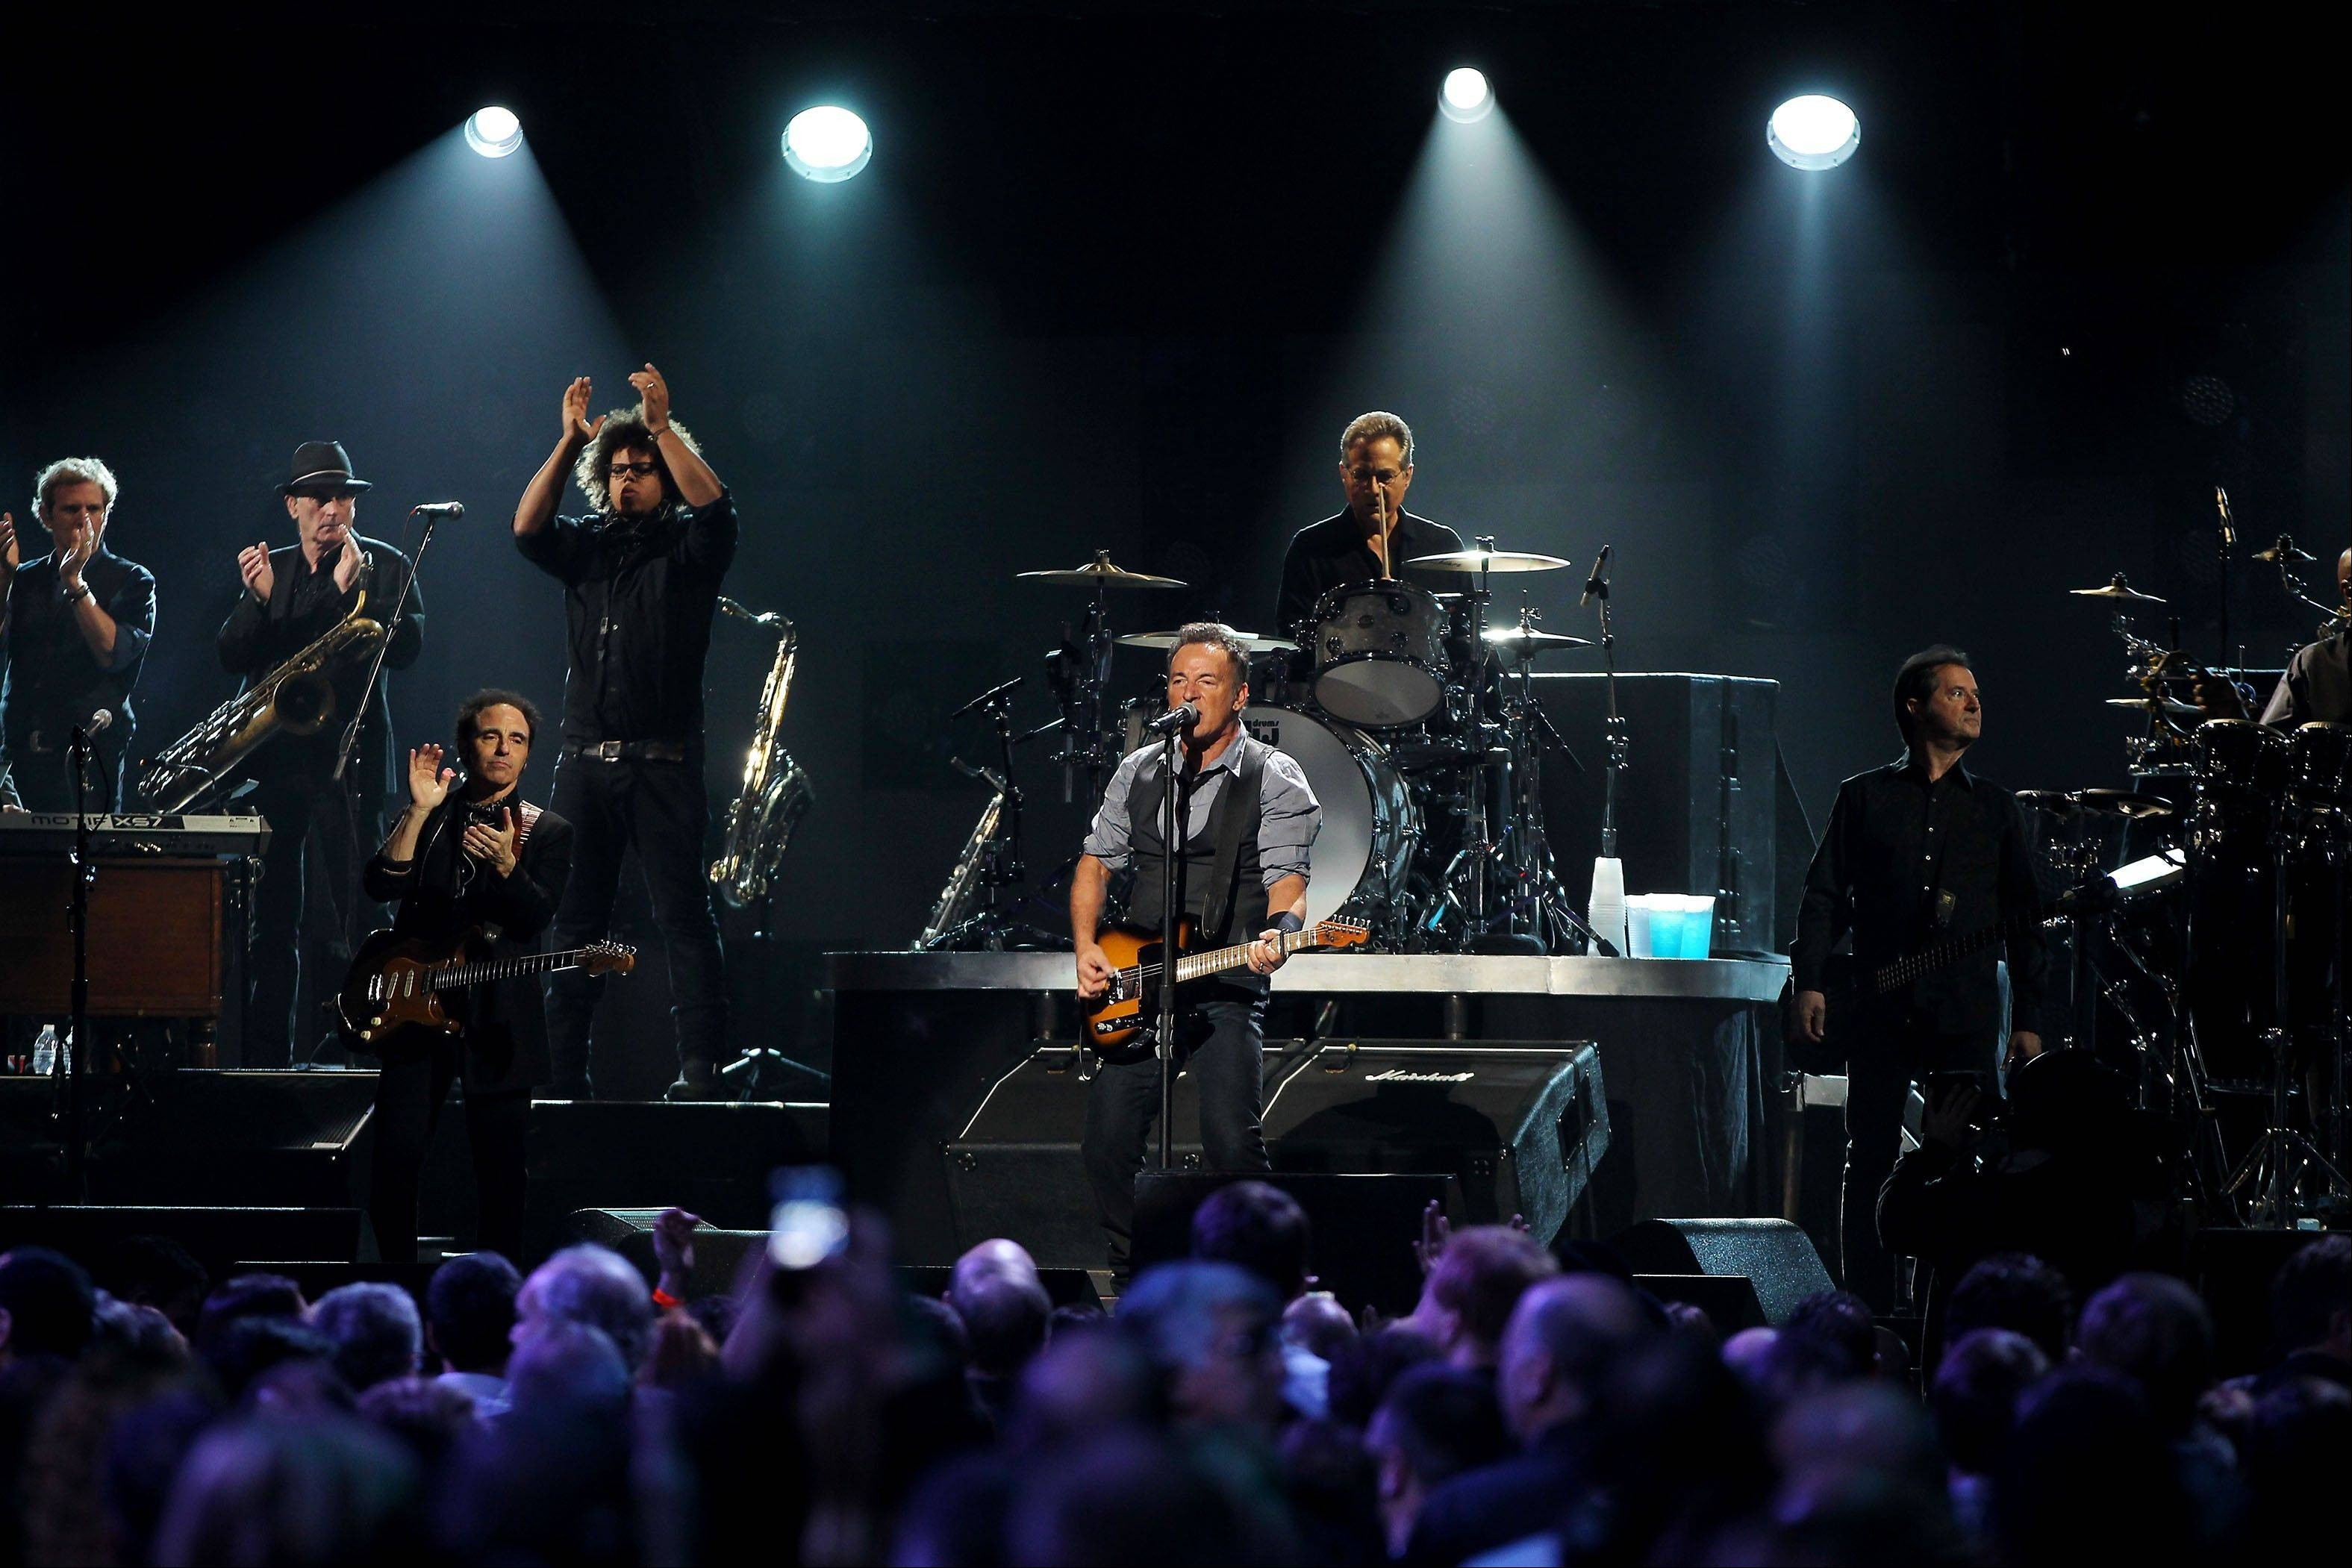 Bruce Springsteen and the E Street Band perform Wednesday at the 12-12-12 The Concert for Sandy Relief at Madison Square Garden in New York.